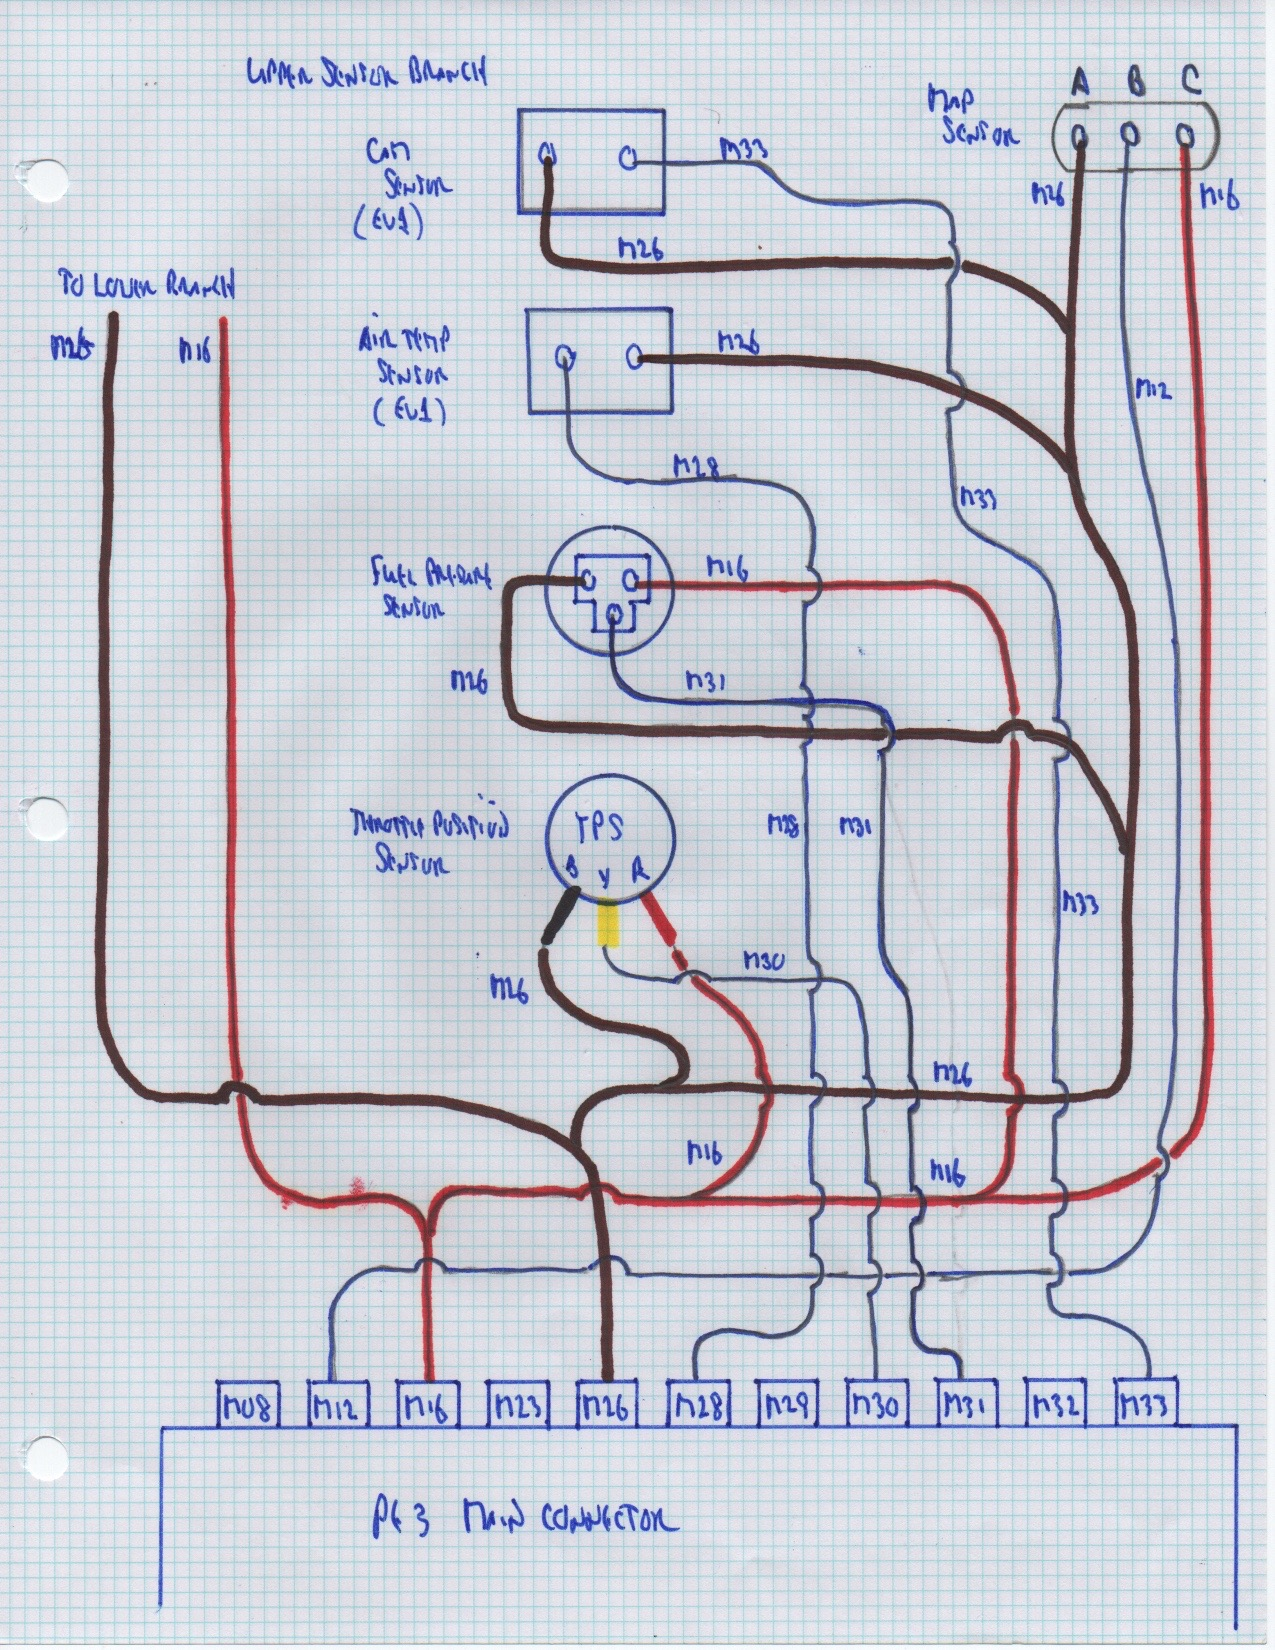 Bodine B100 Wiring Diagram Emergency Ballast 50b Perfect Image Collection Electrical On Iota Potter Brumfield